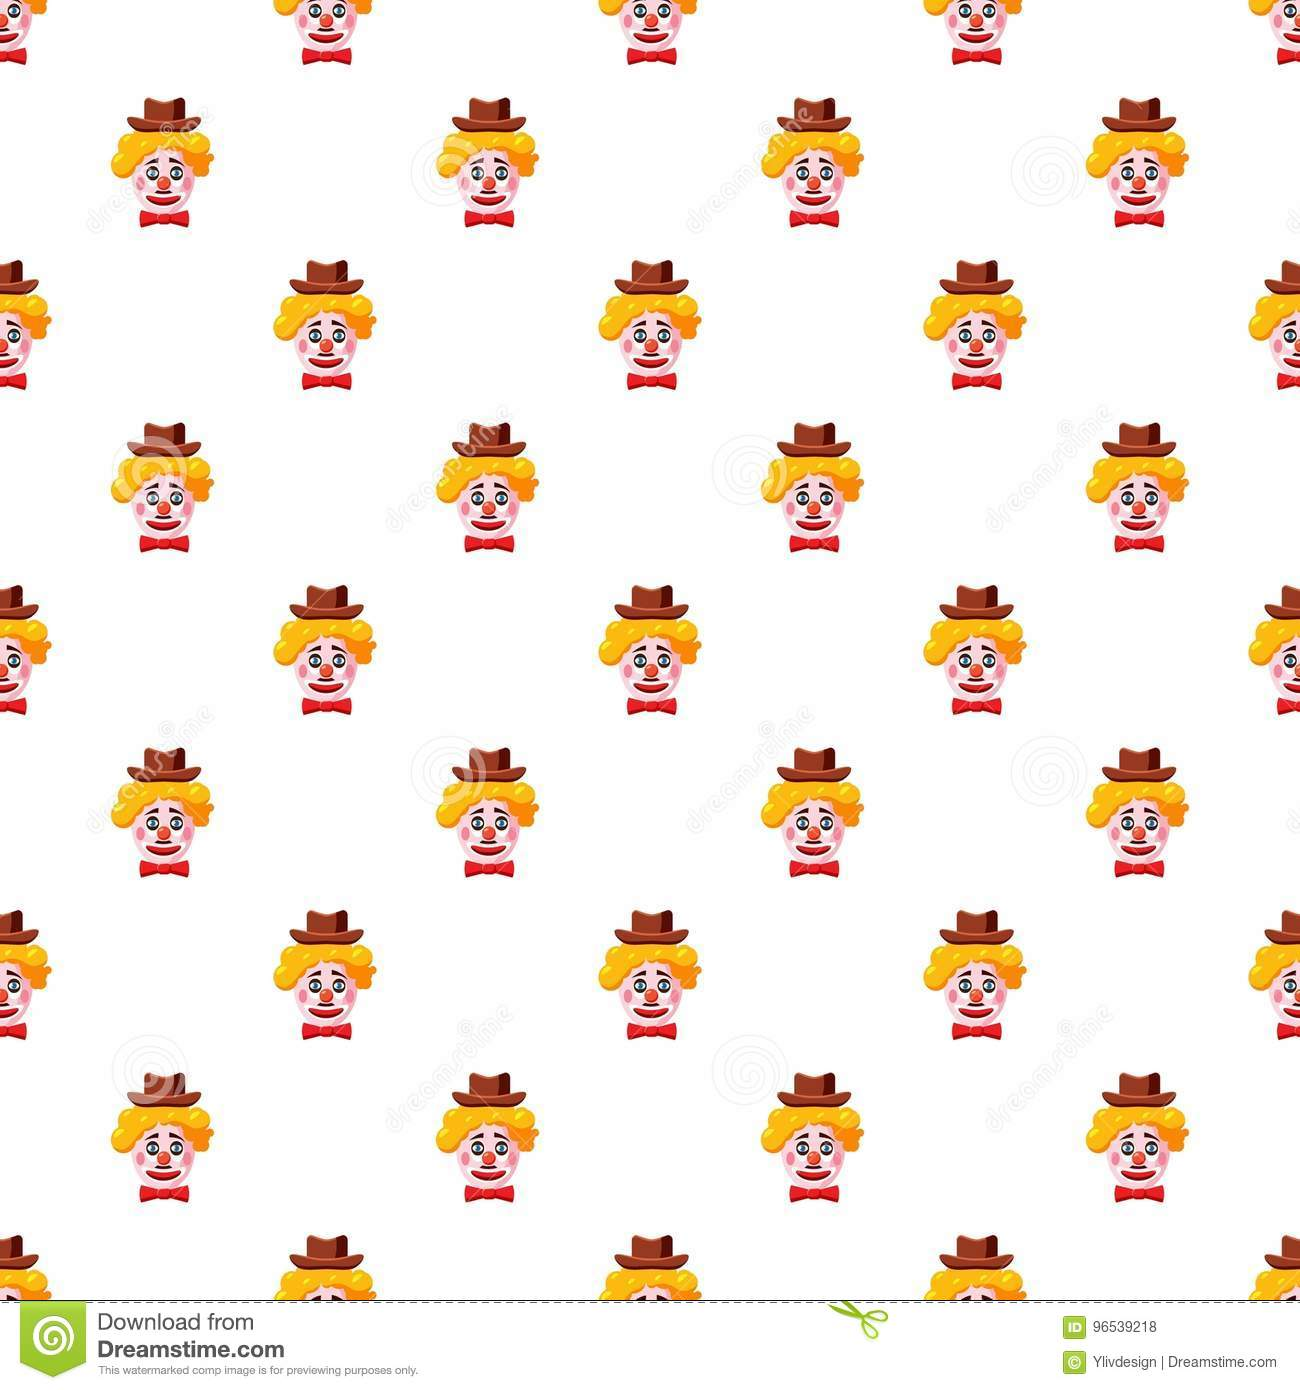 Clown Face With Hat Pattern Stock Vector - Illustration of ... d5dd46ae6b7